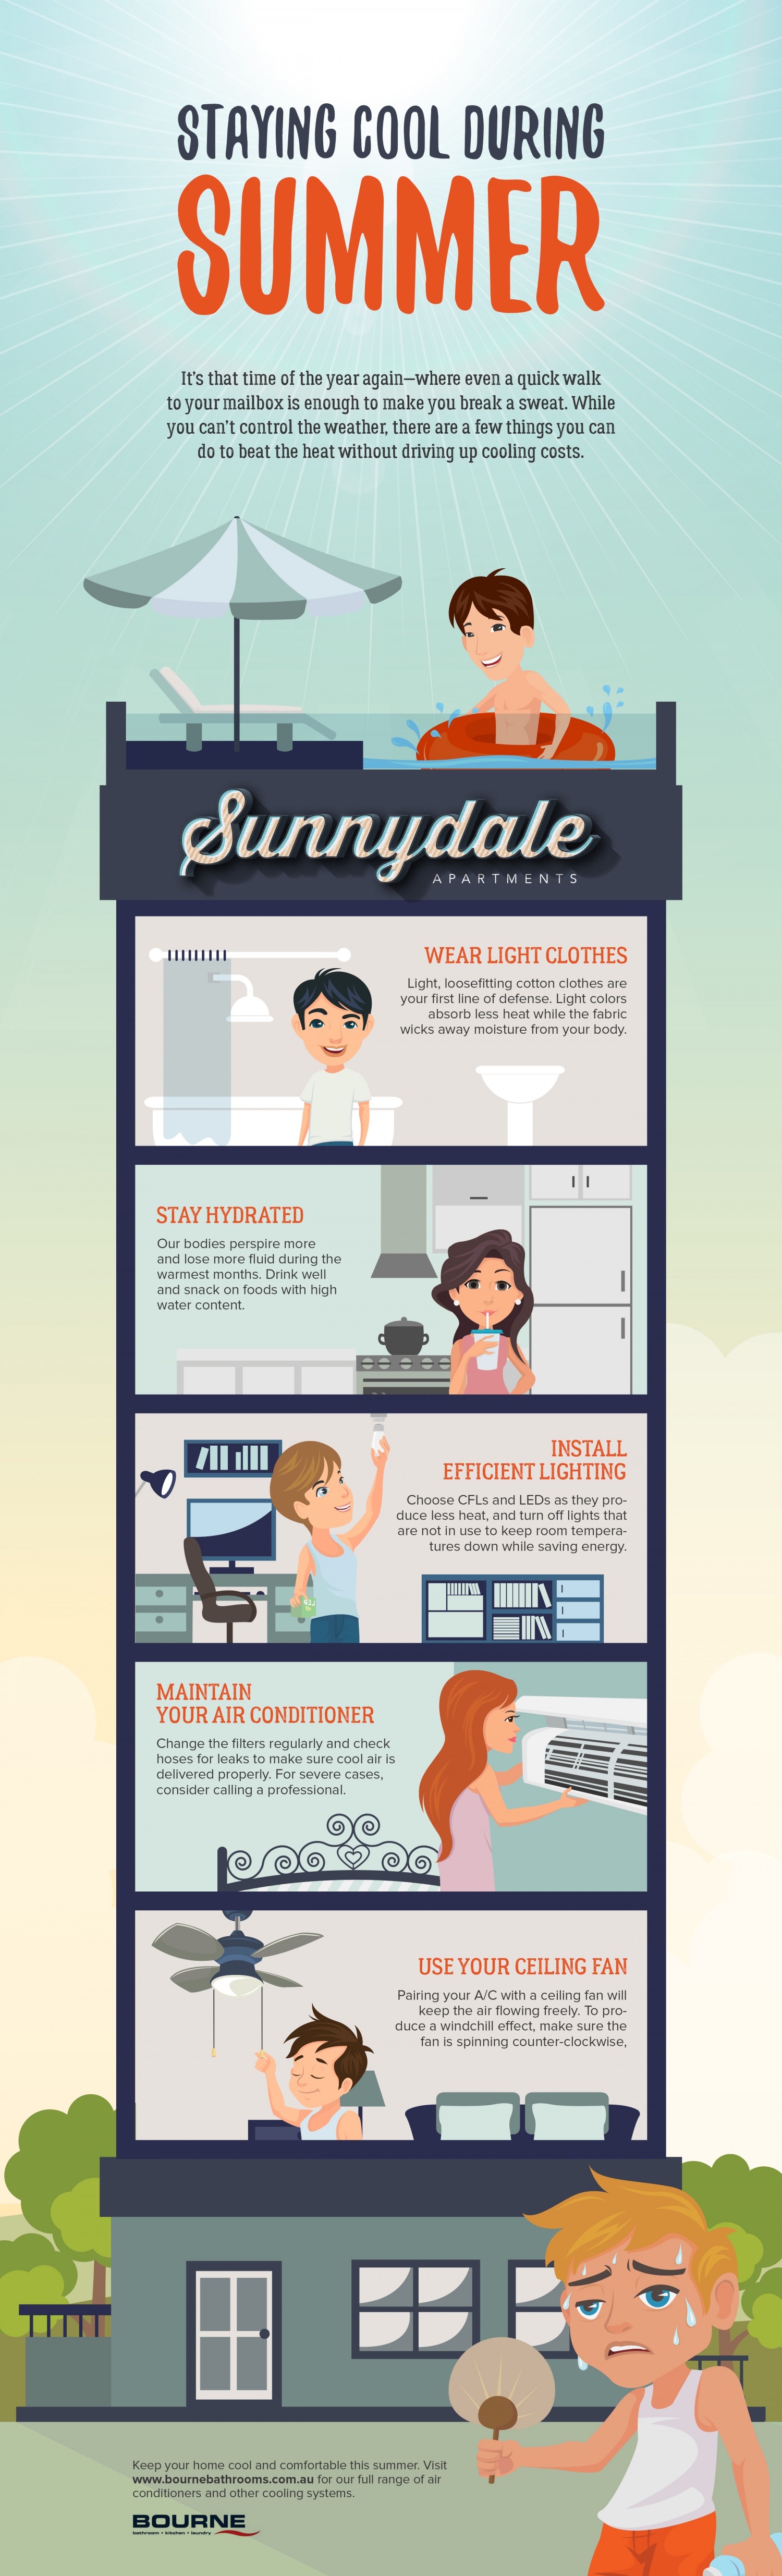 Staying Cool During Summer Infographic